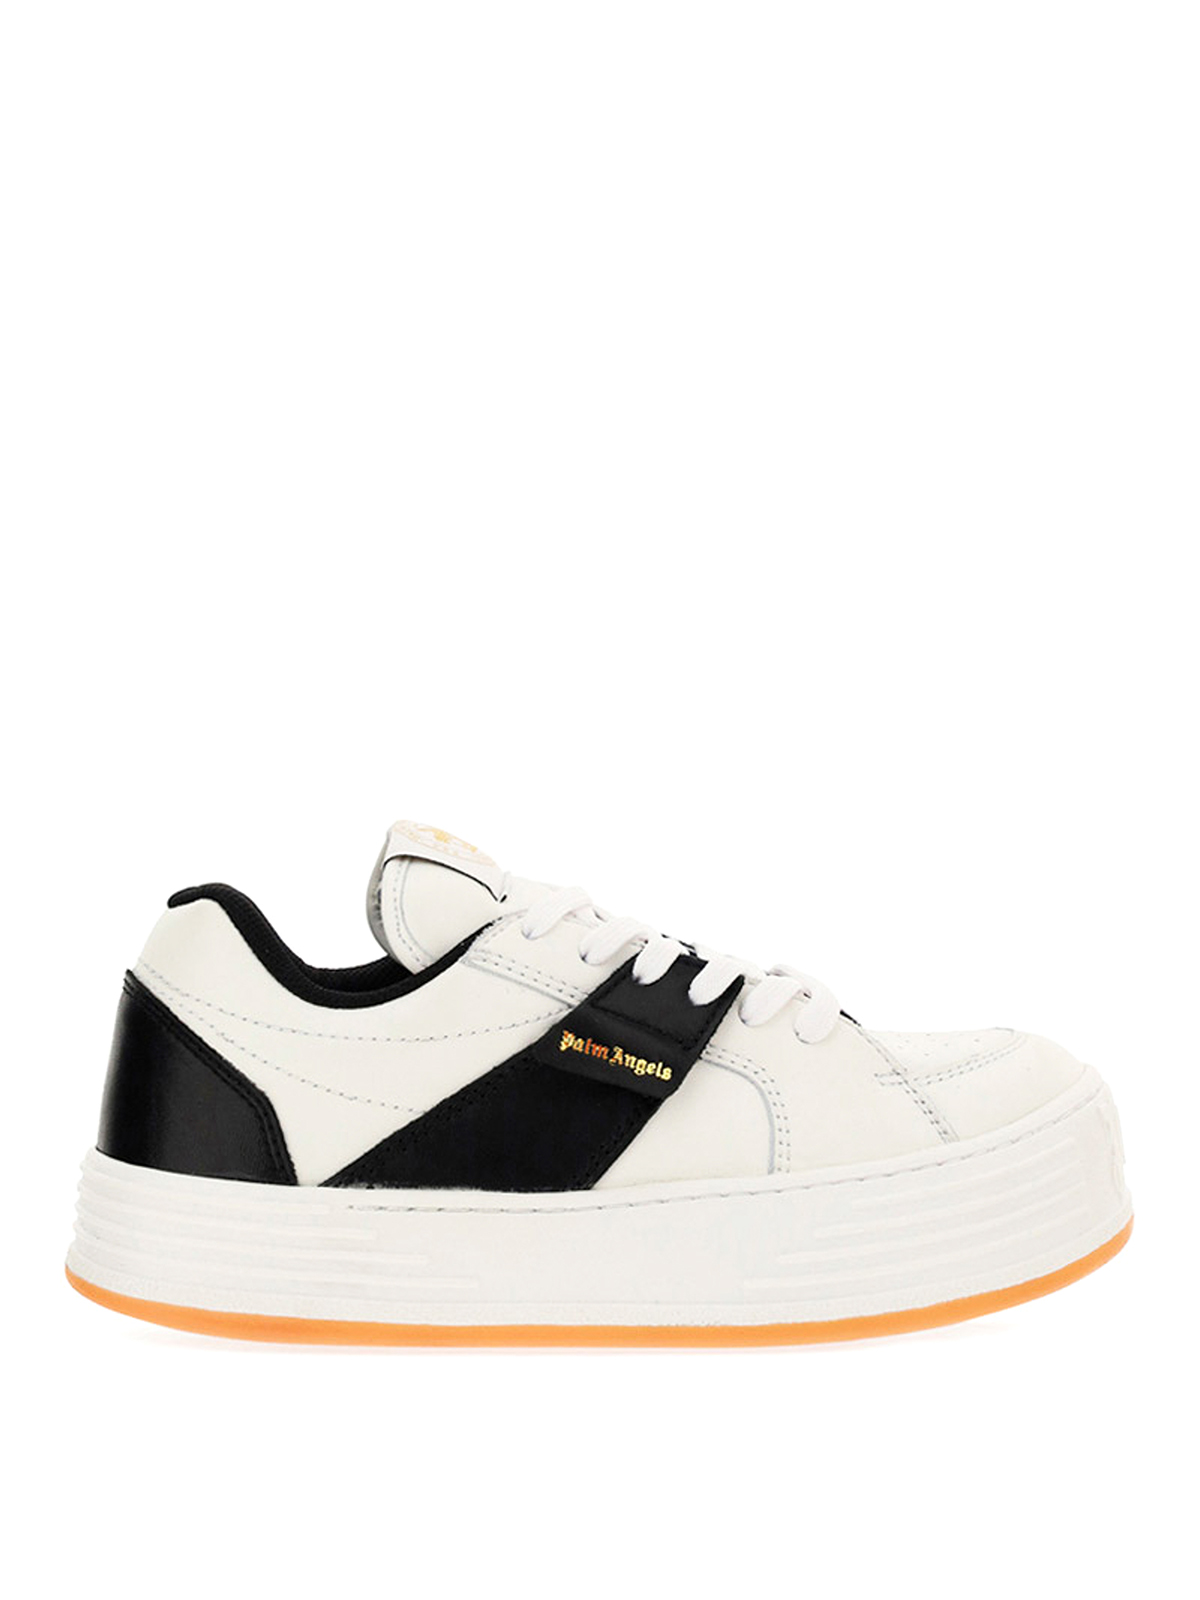 Palm Angels Suedes OVERSIZED SOLE CALFSKIN SNEAKERS